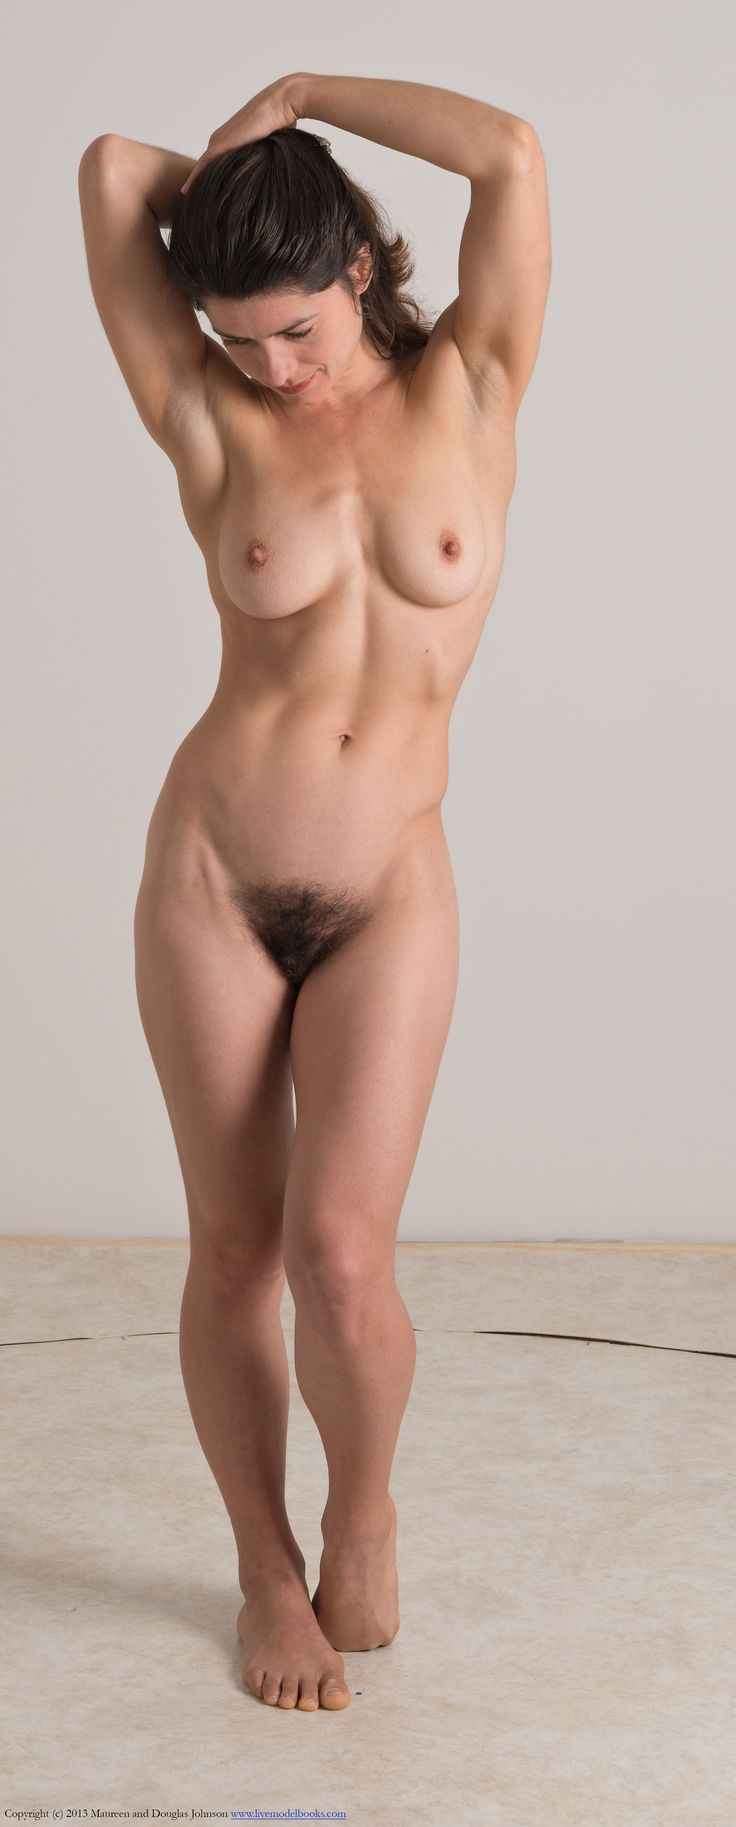 Female Nude Poses 14